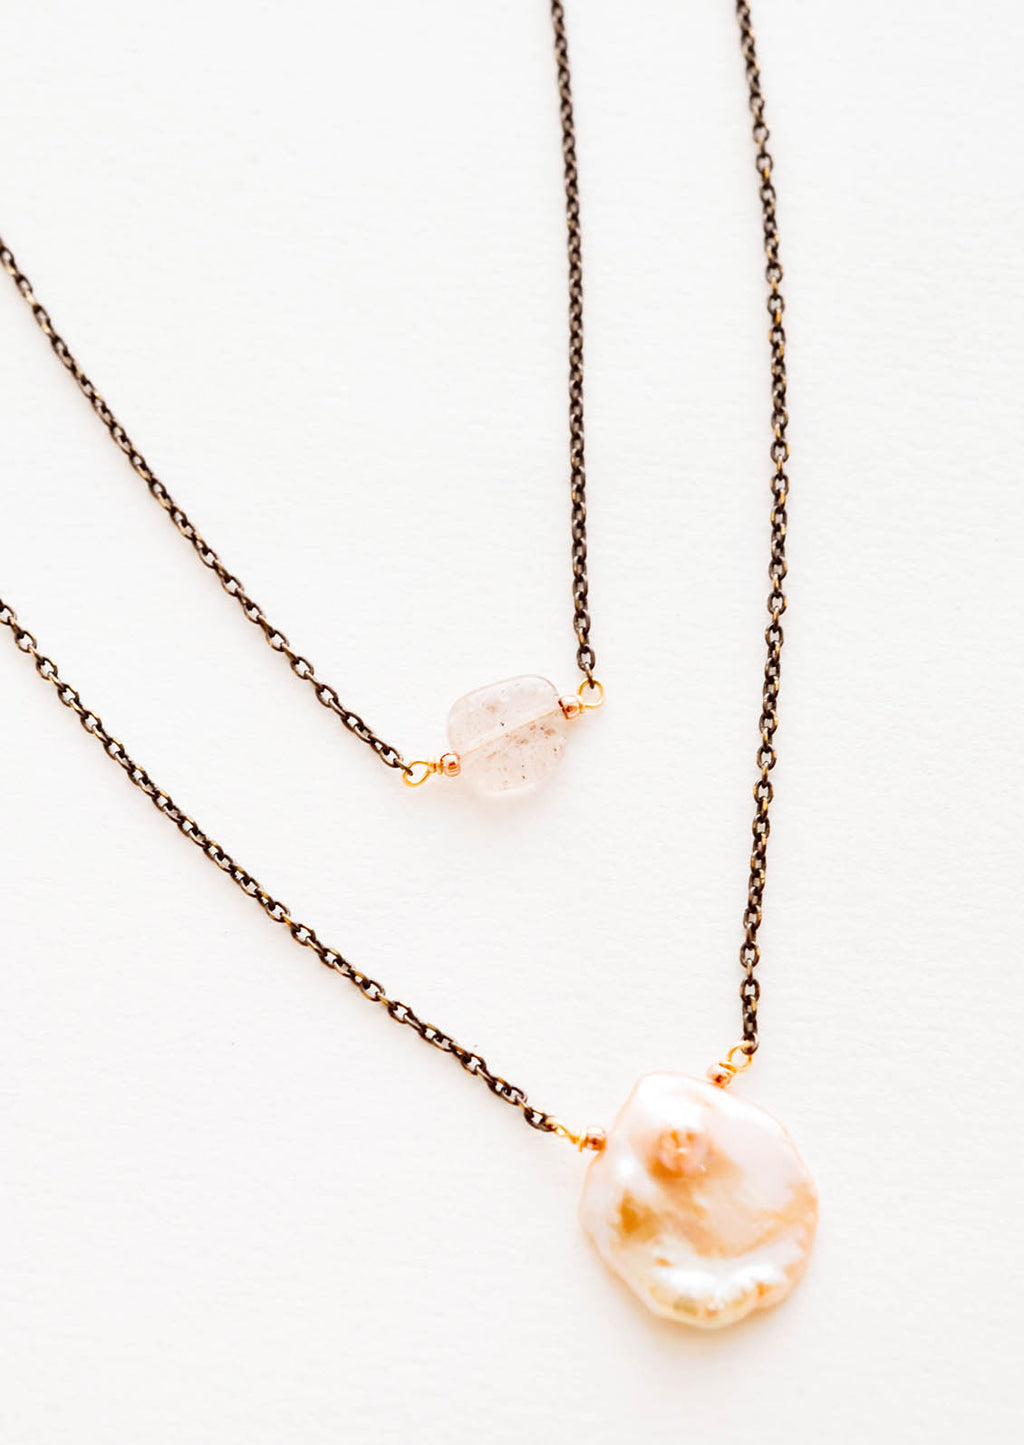 1: Close up of two layer necklace composed of one dark gold chain with translucent pink crystal and one of dark gold chain and pink freshwater pearl.